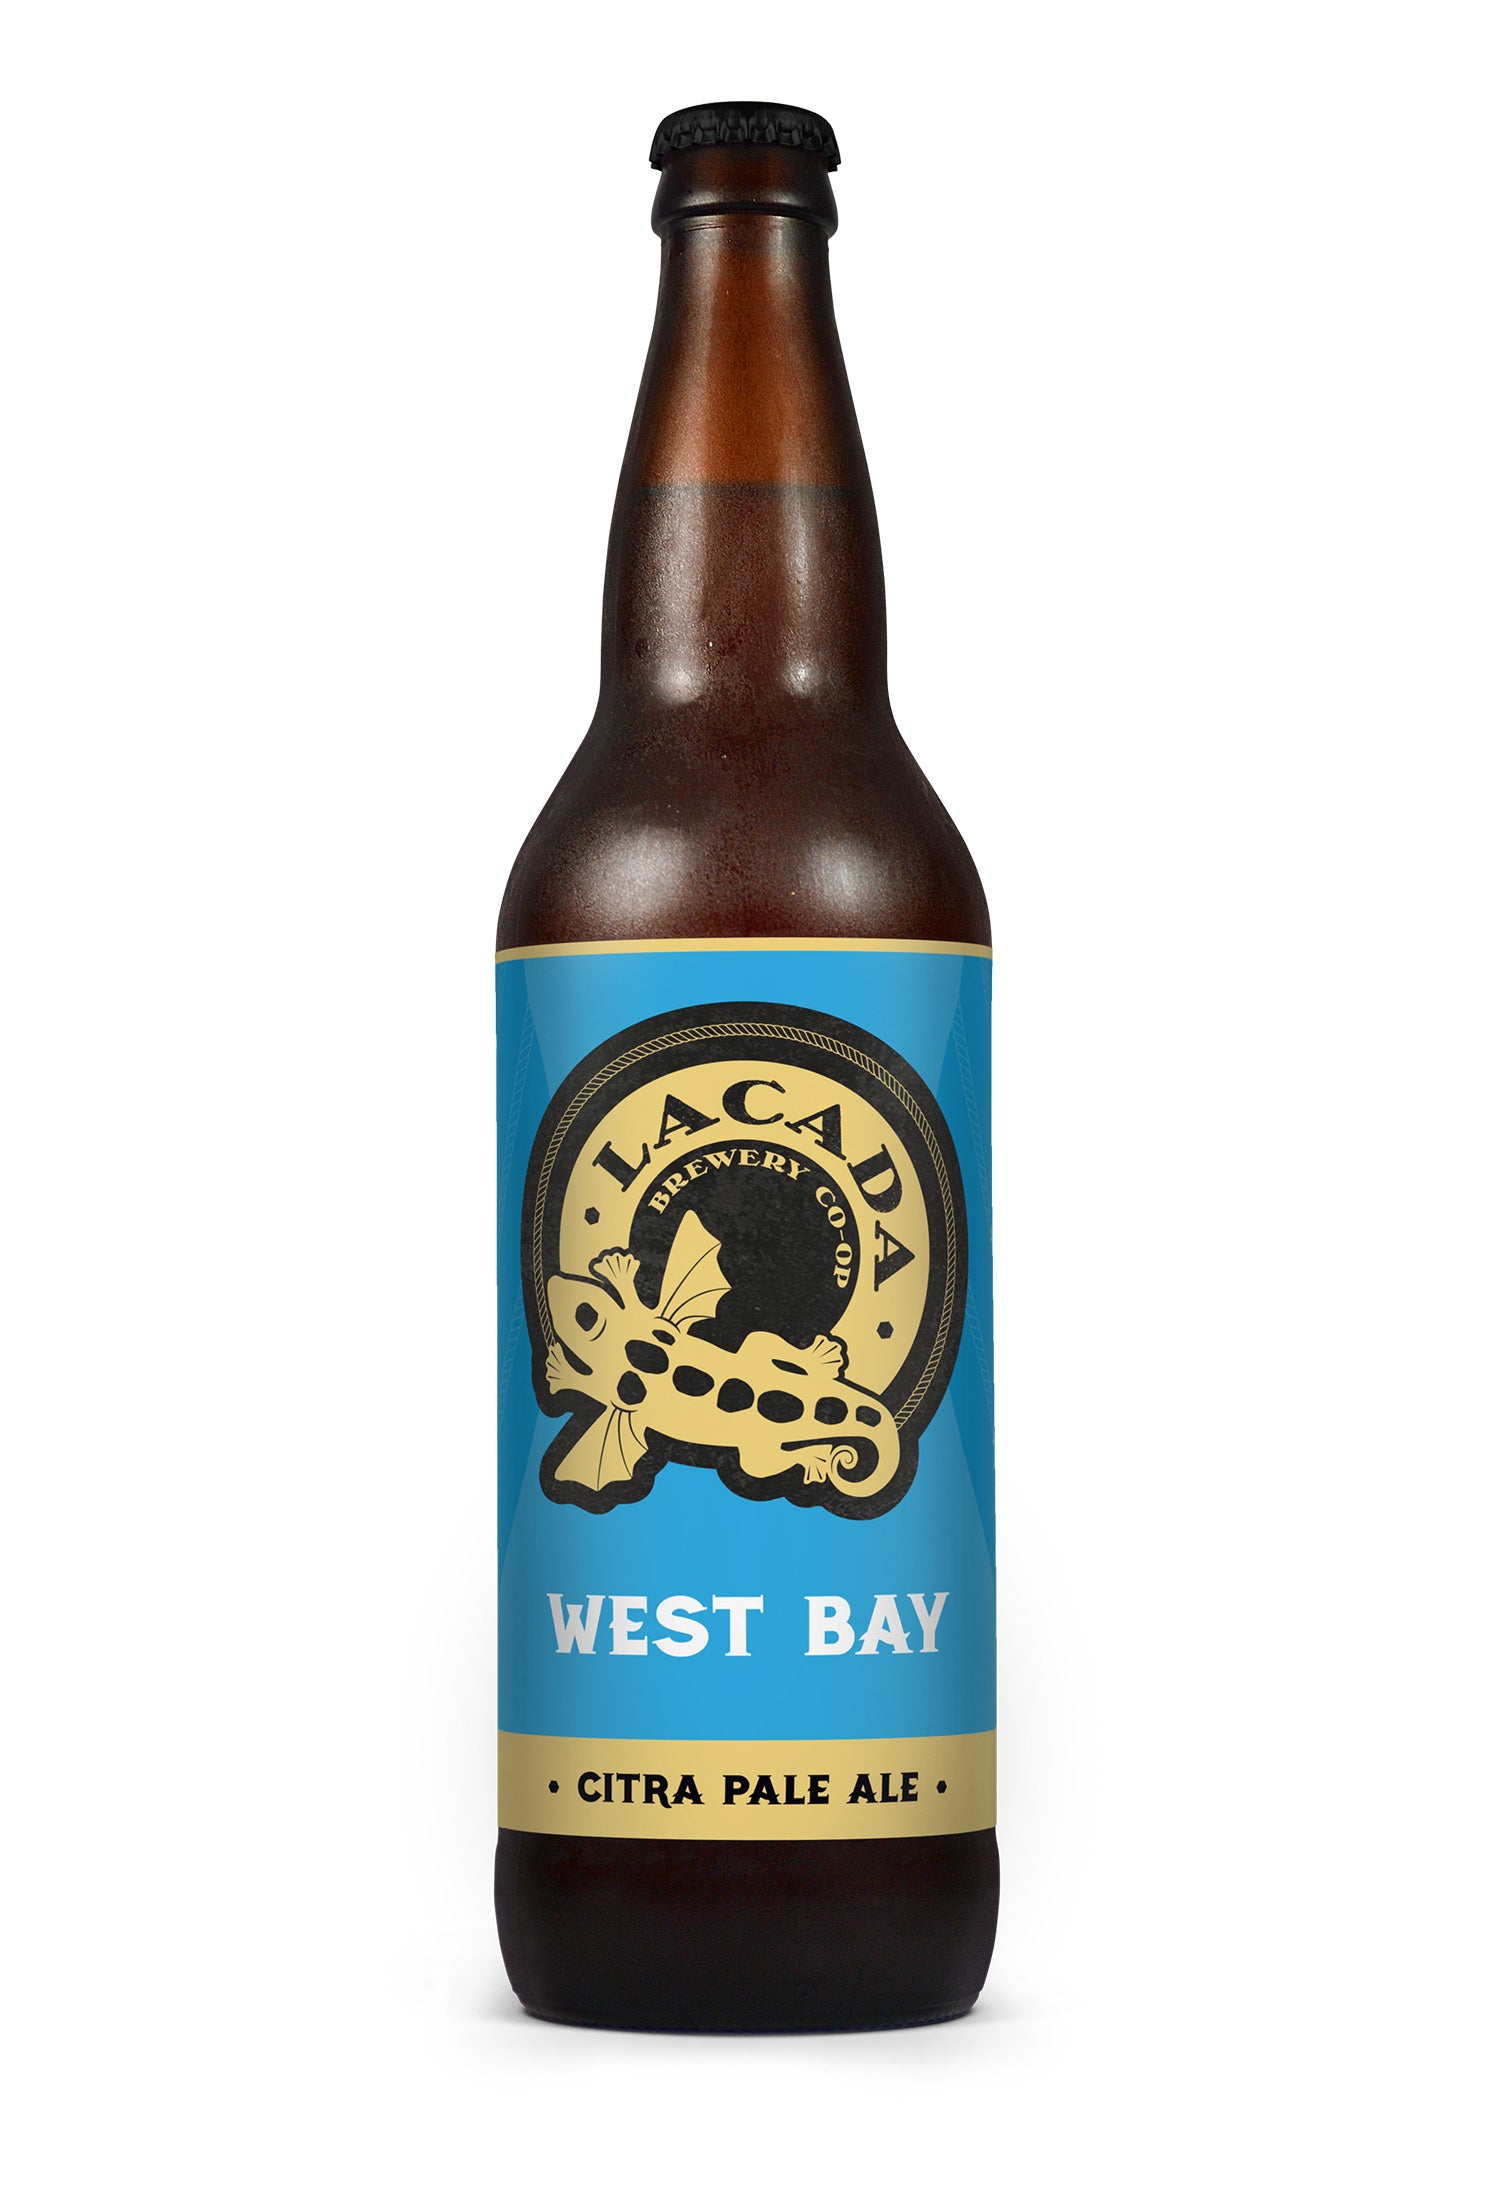 Lacada - West Bay - Citra Pale Ale